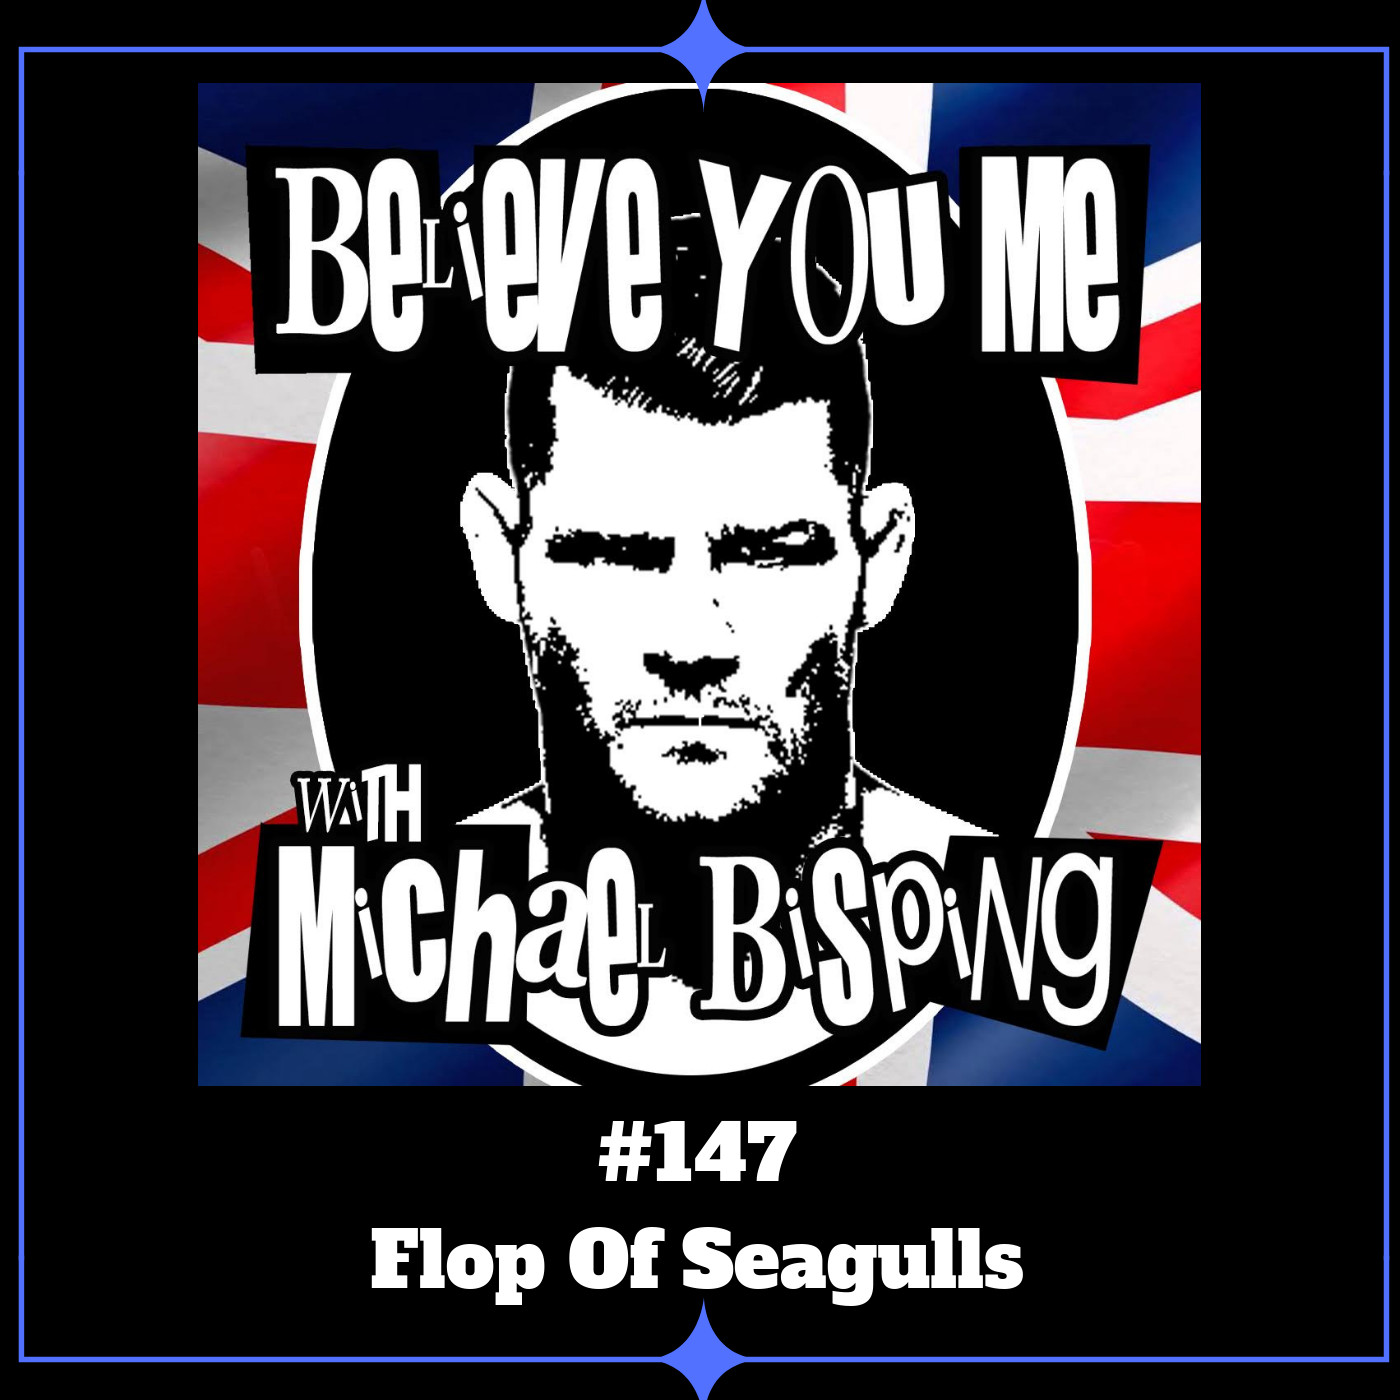 147 - Flop Of Seagulls